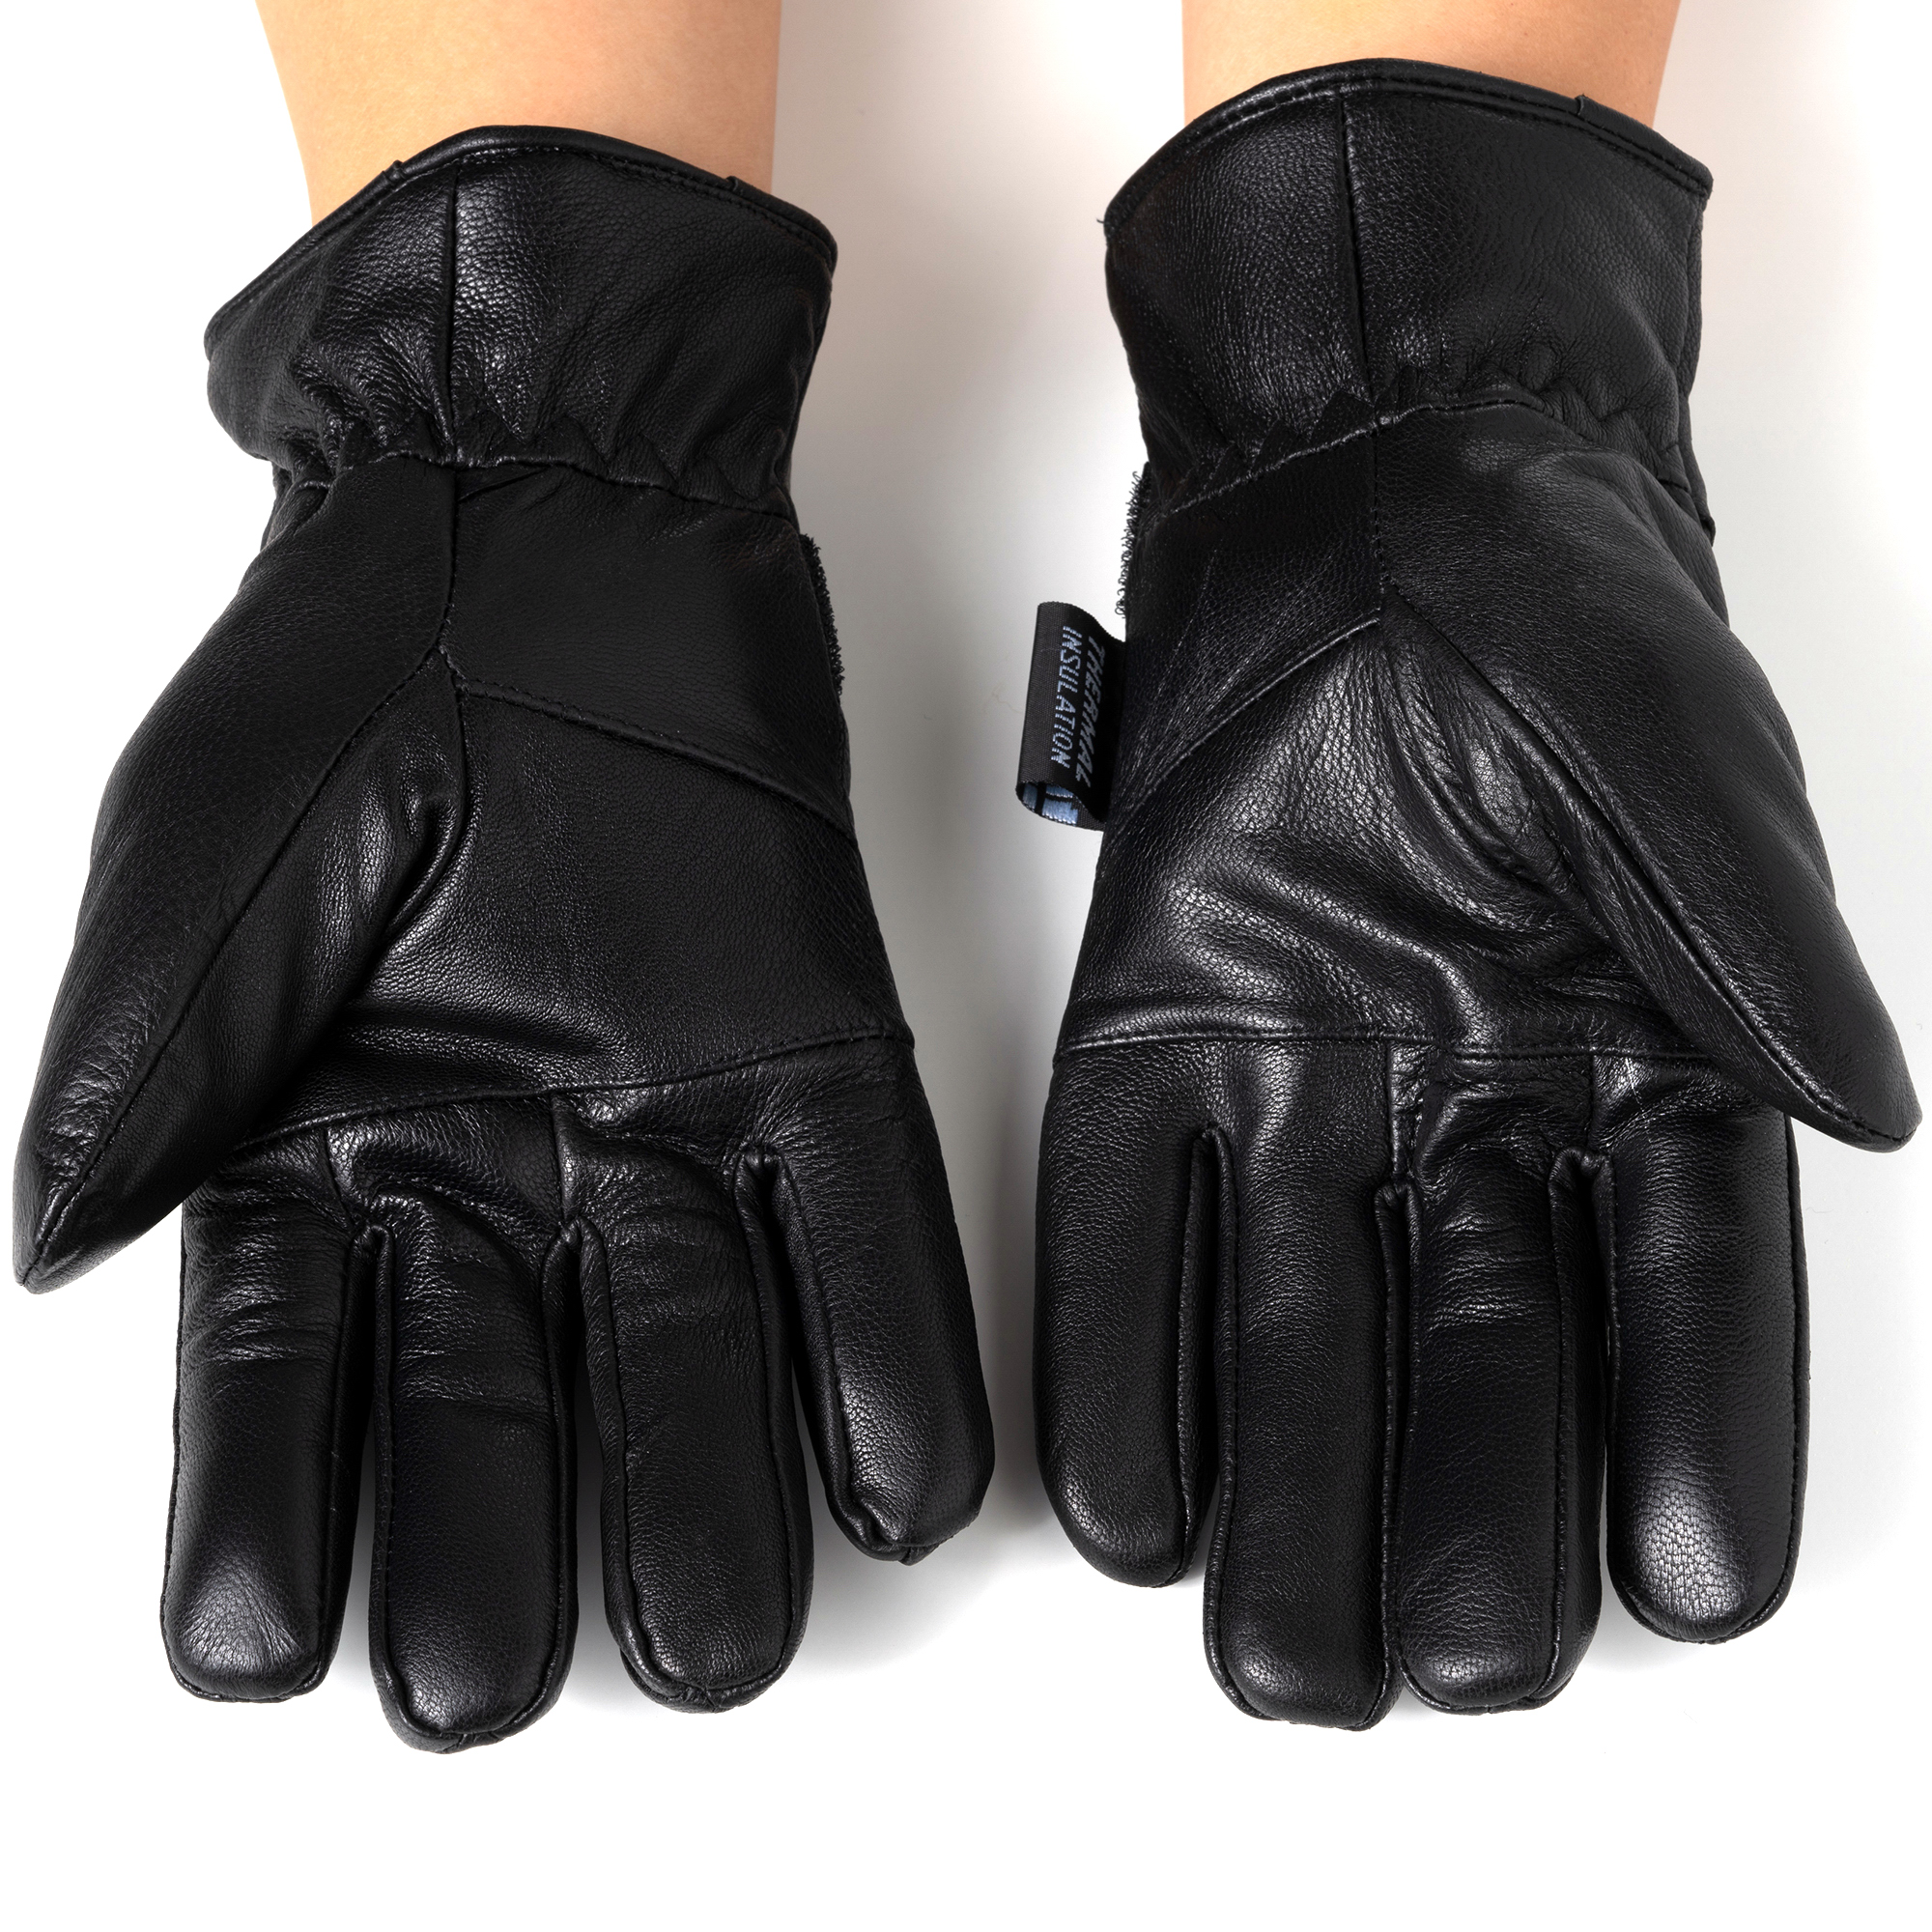 Alpine-Swiss-Mens-Gloves-Dressy-Genuine-Leather-Warm-Thermal-Lined-Wrist-Strap thumbnail 15